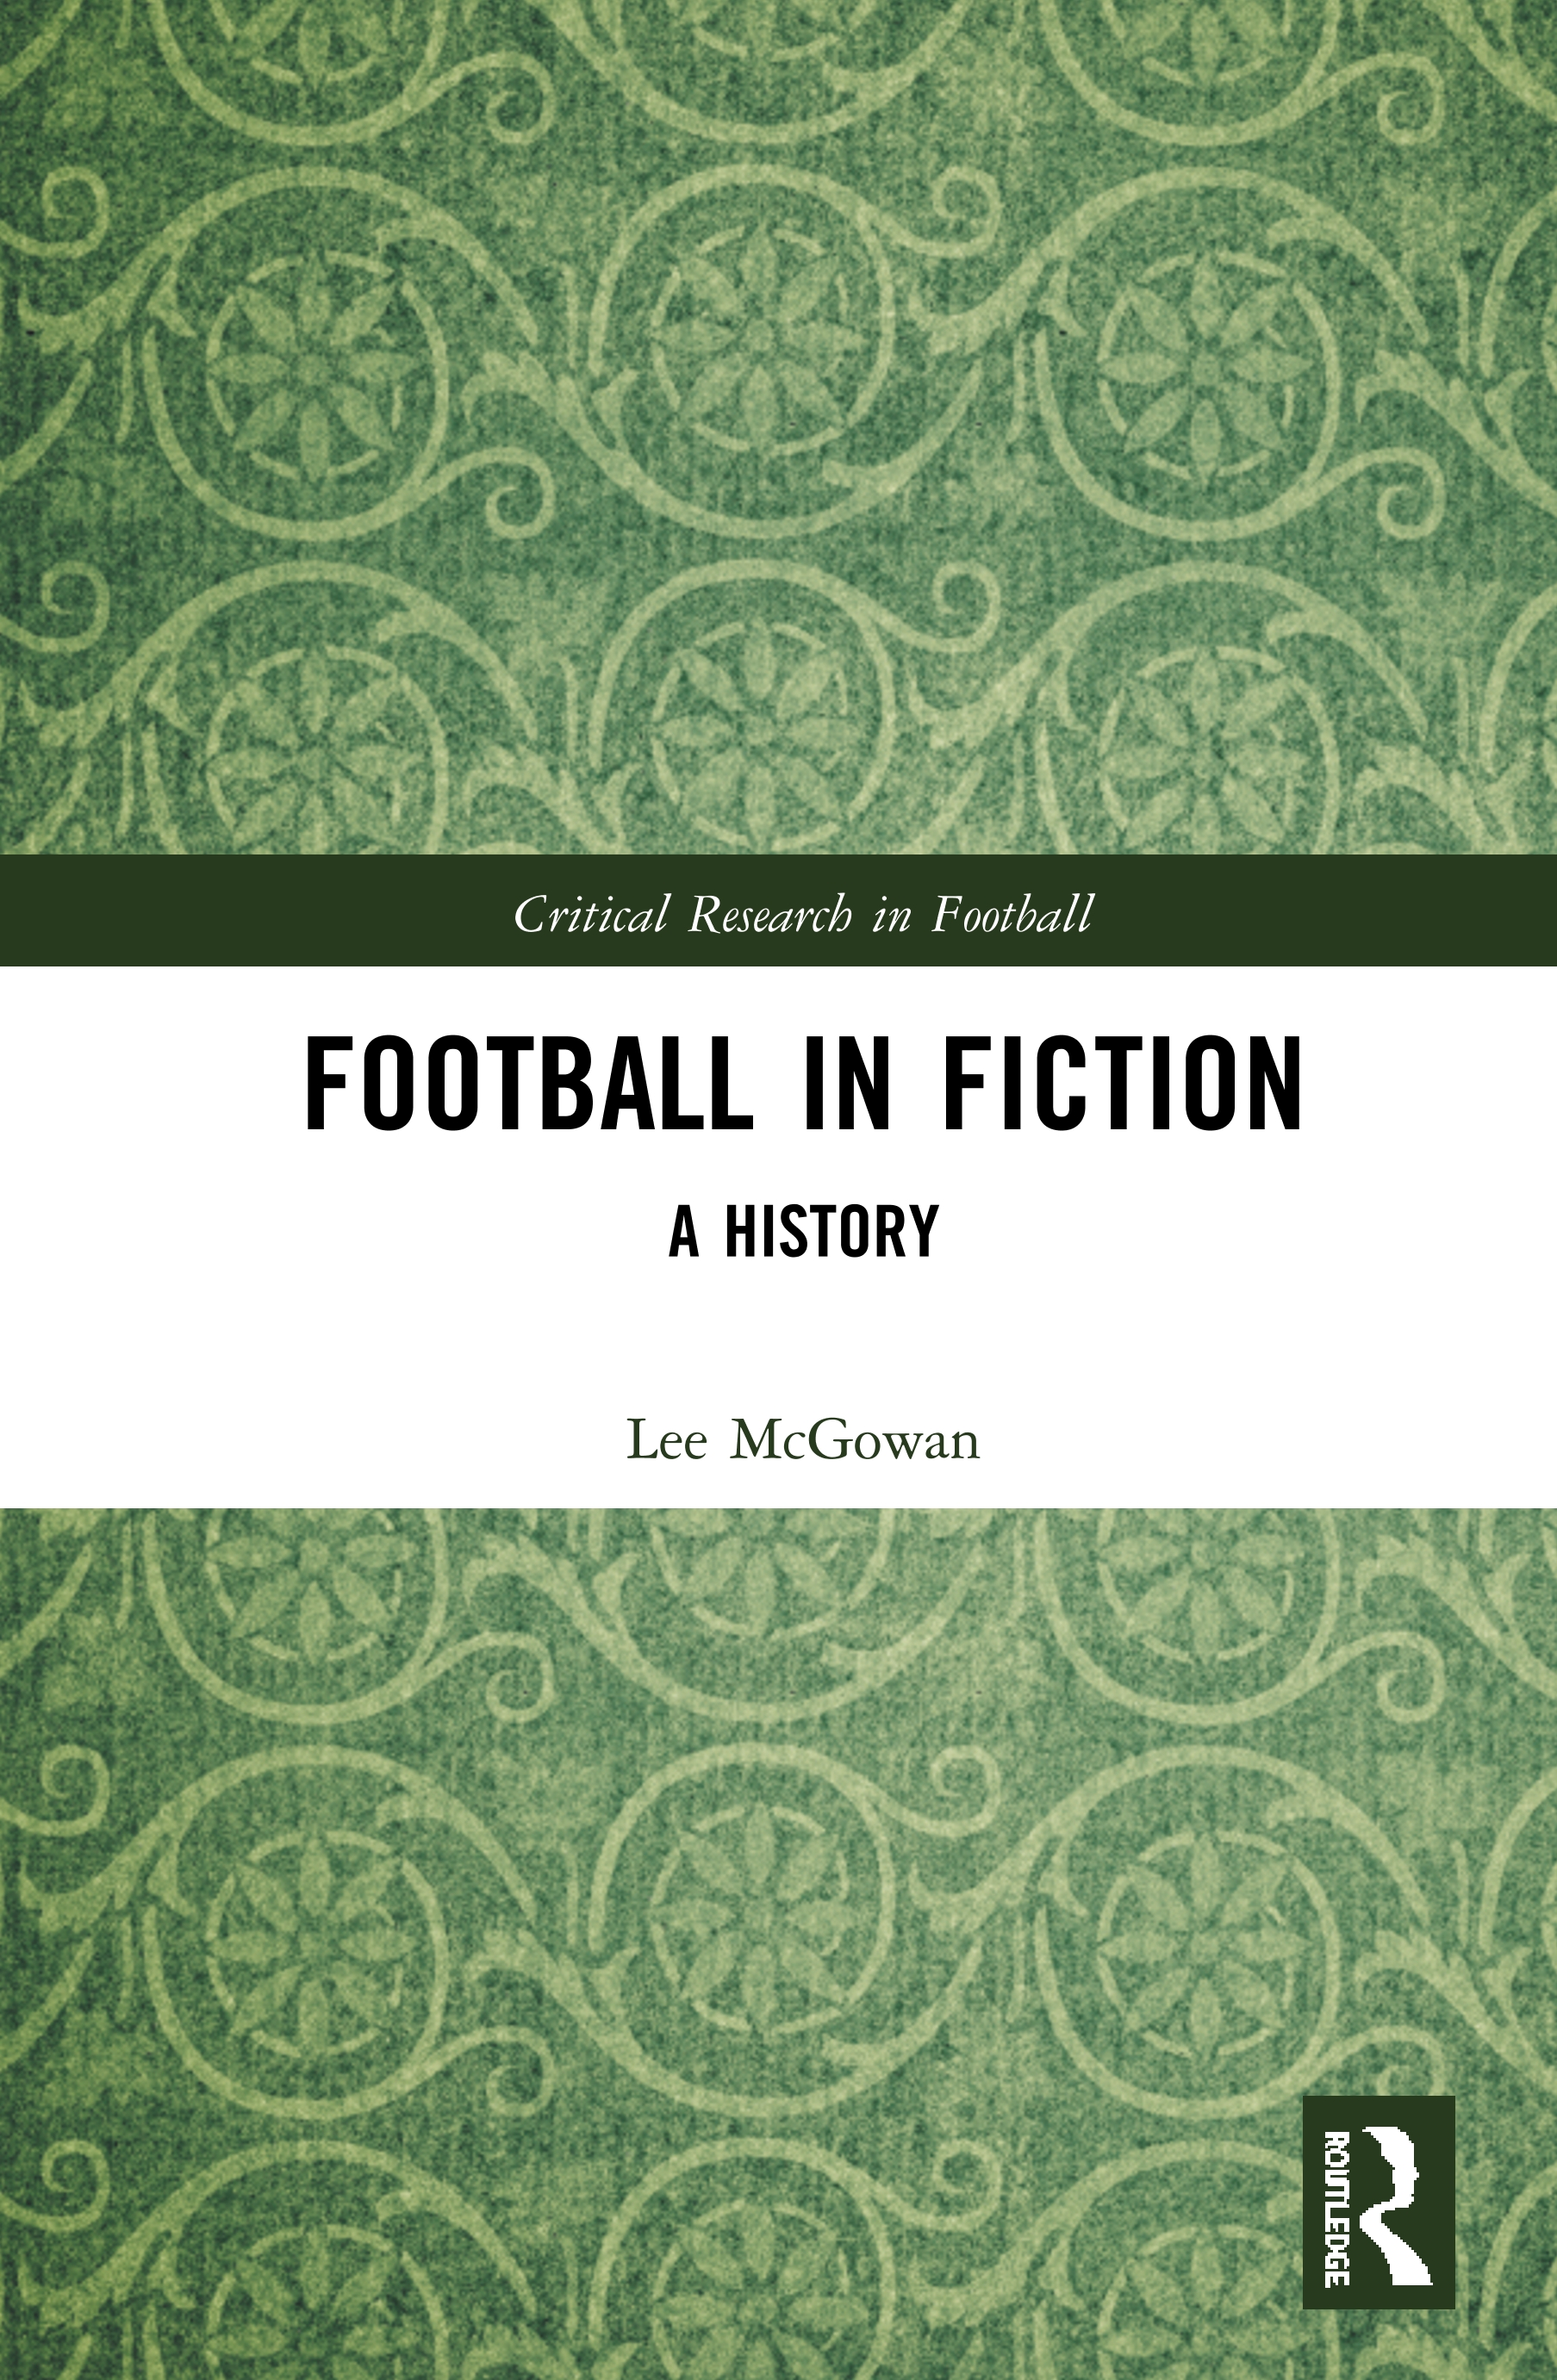 Football in Fiction: A History book cover